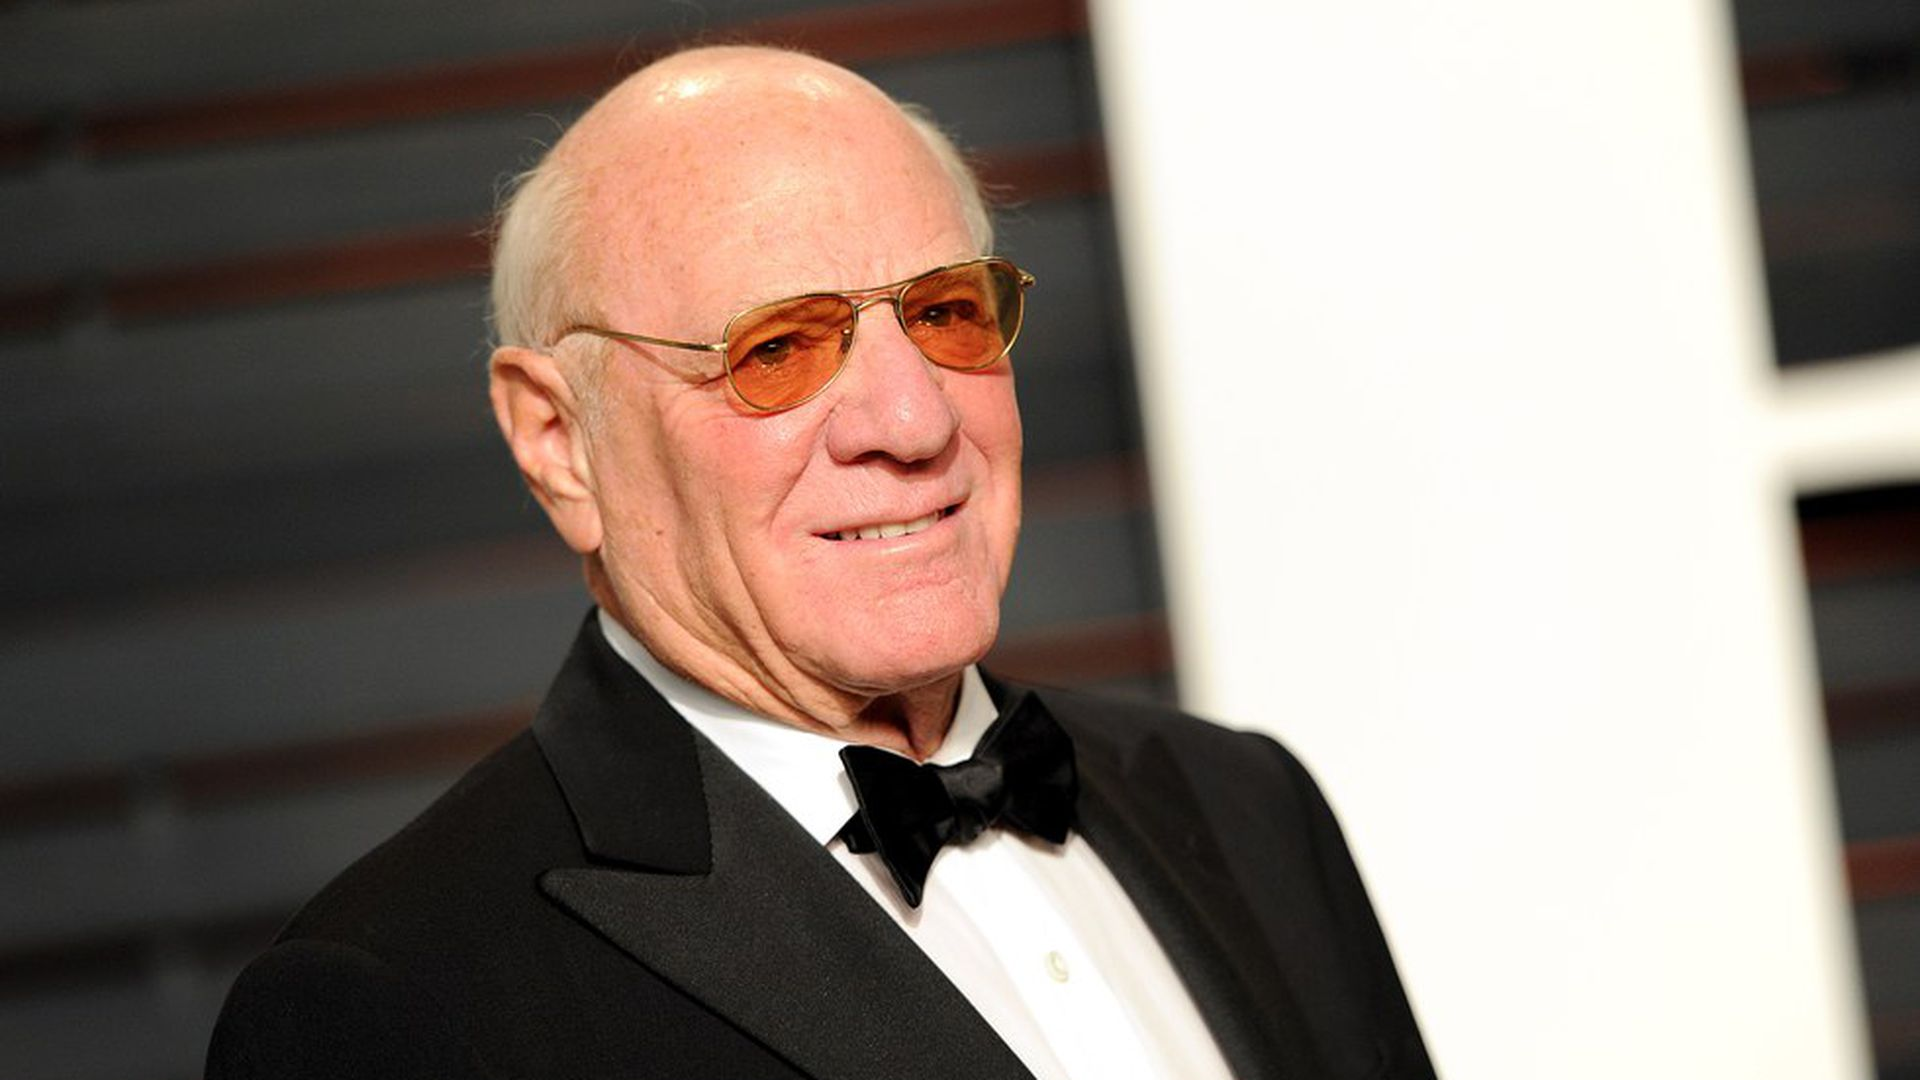 barry diller, ceo interactivcorp, ceo fox television, ceo paramount pictures, act consulting